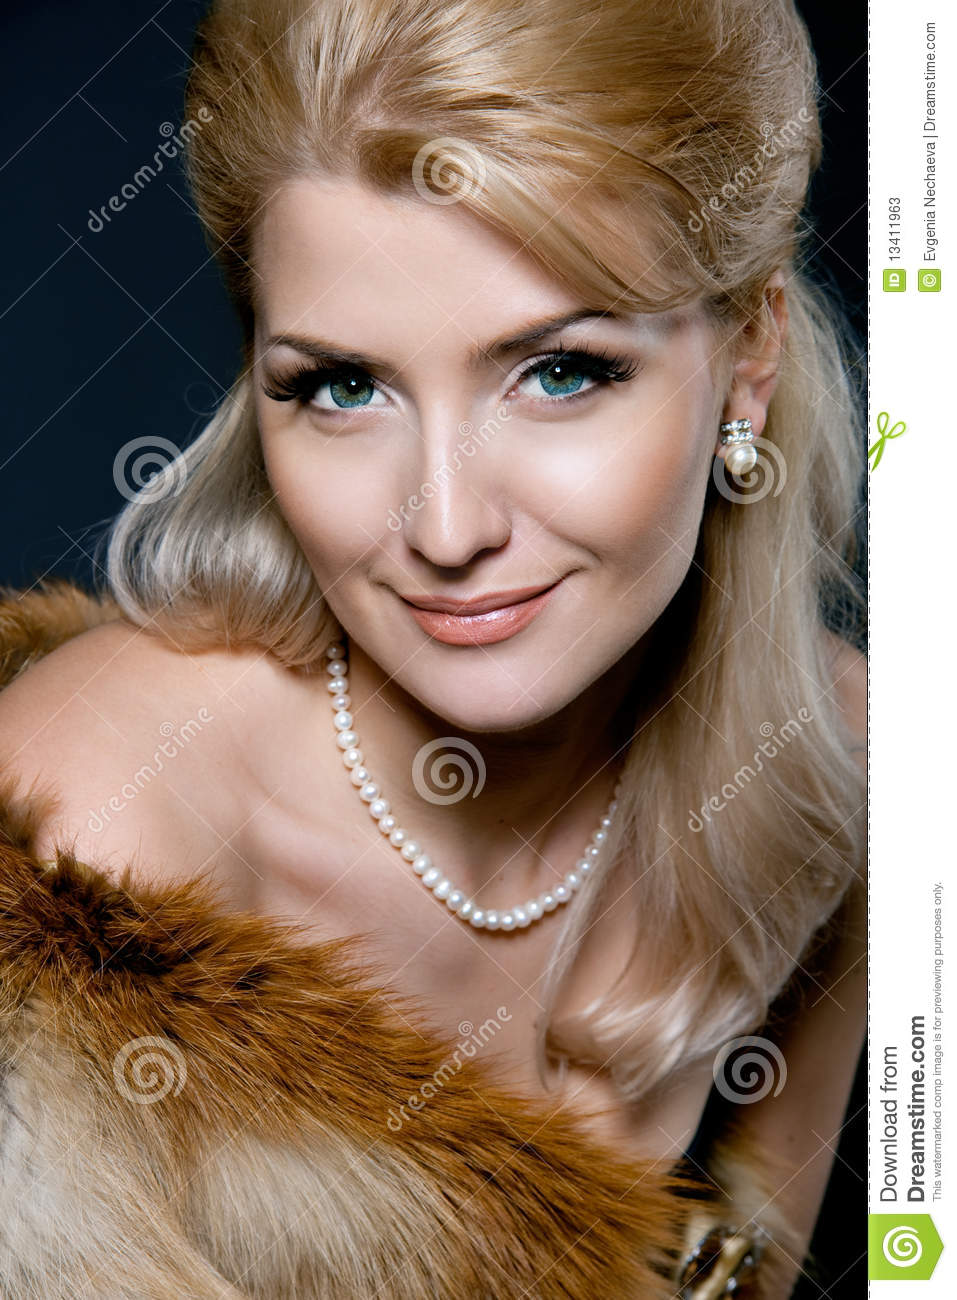 Face Of A Beautiful Young Blond Woman Stock Image - Image ...